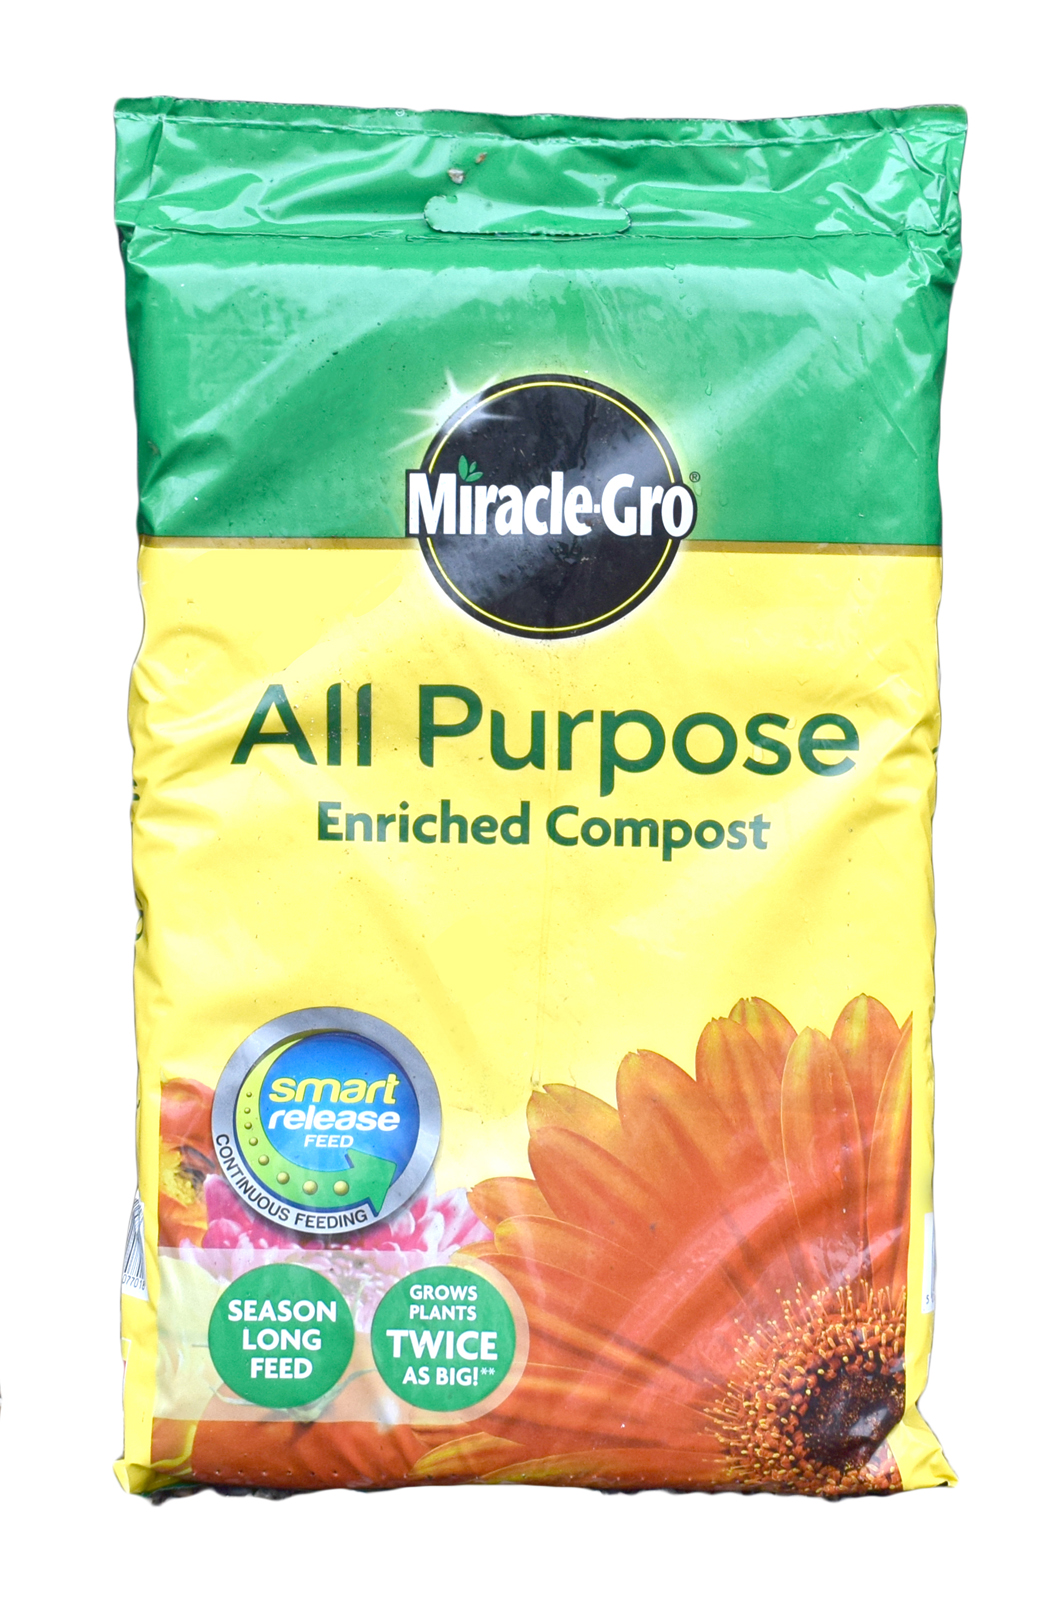 Miracle Gro Compost